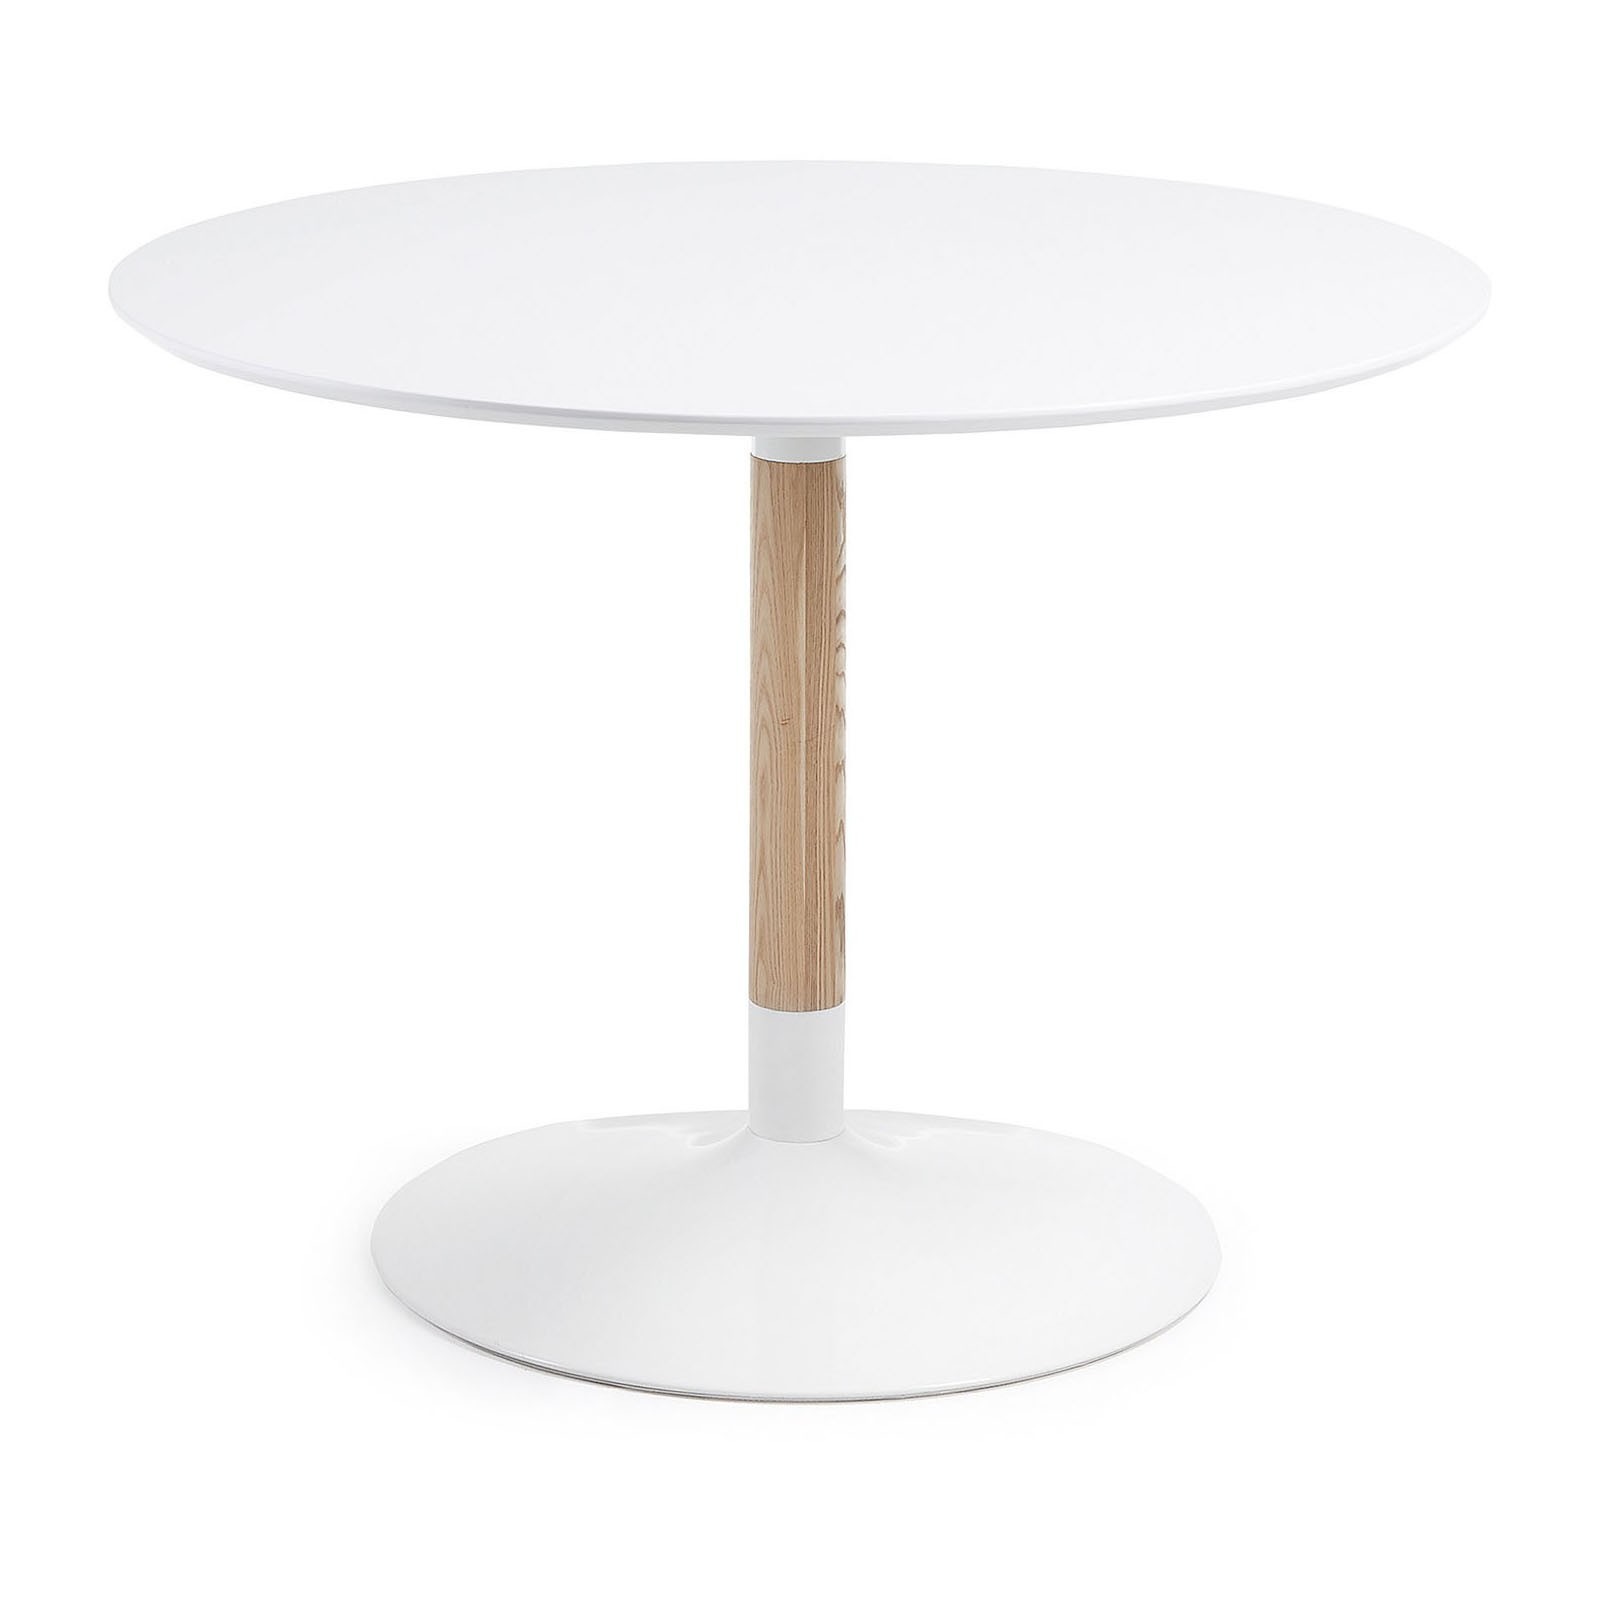 Castillo Round Dining Table, 110cm, White